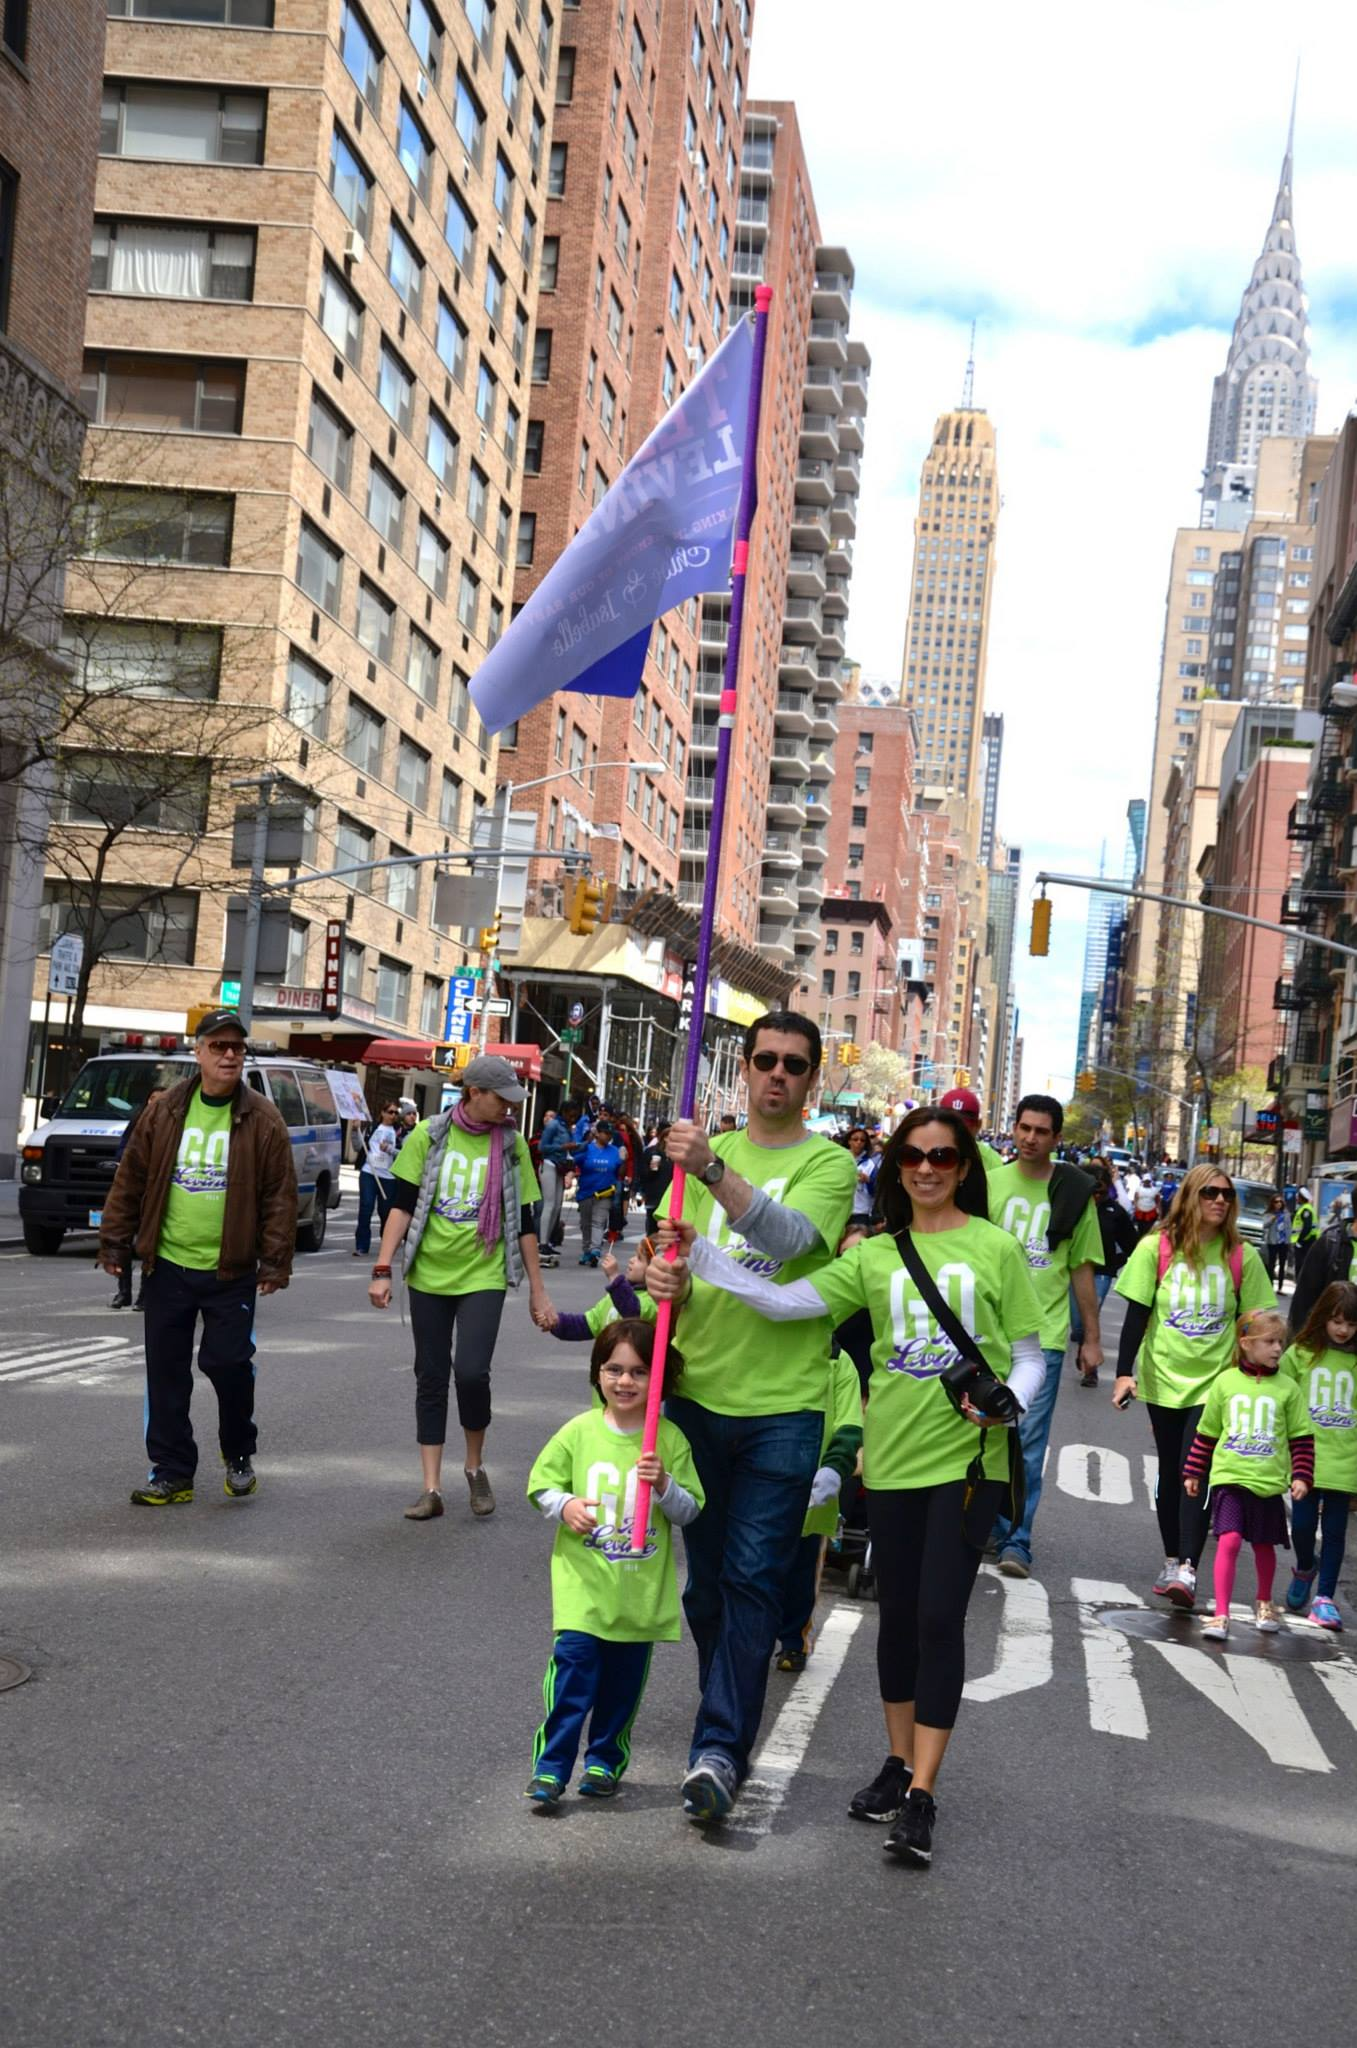 julian-josh-and-paulina-levine-at-the-2015-march-for-babies-walk_16917495685_o.jpg